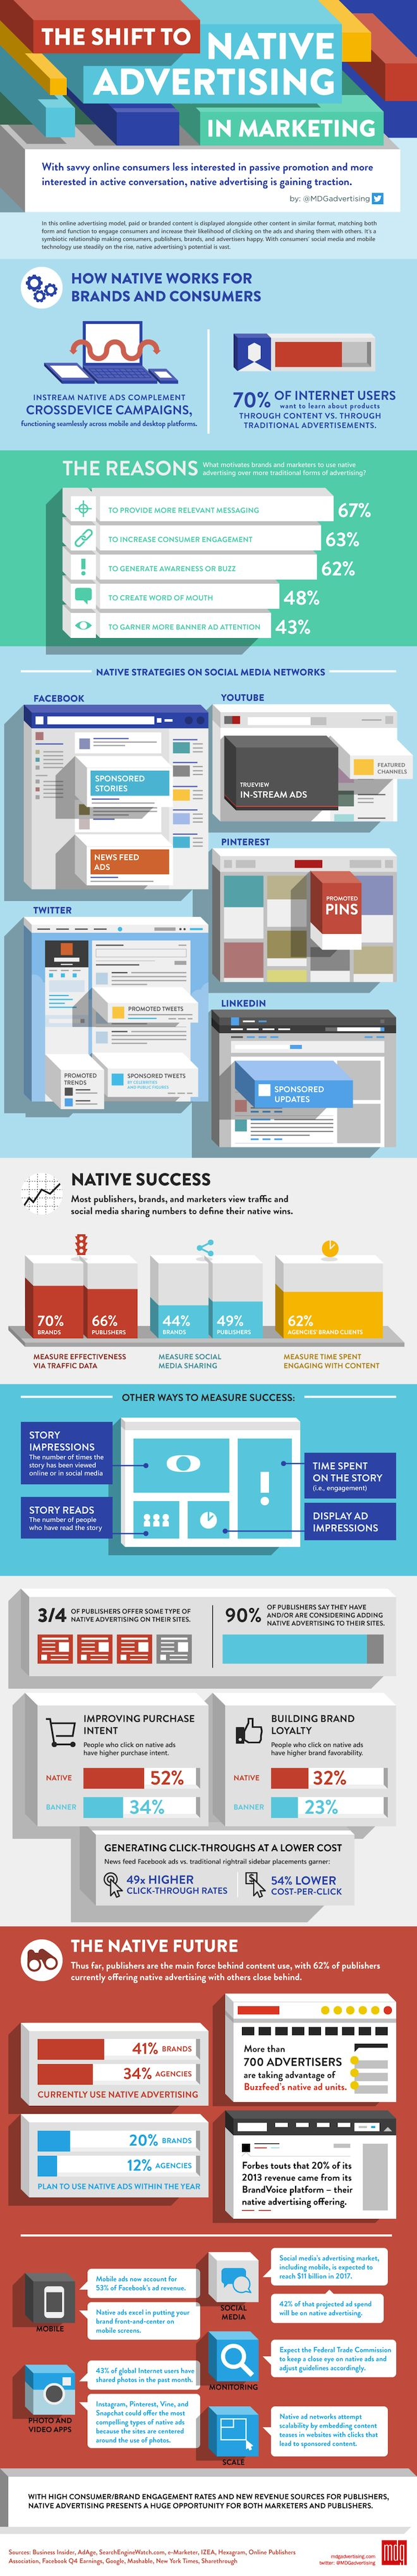 [INFOGRAPHIC] The Shift to Native Advertising in Marketing—How it works; Successes; Future; Details.